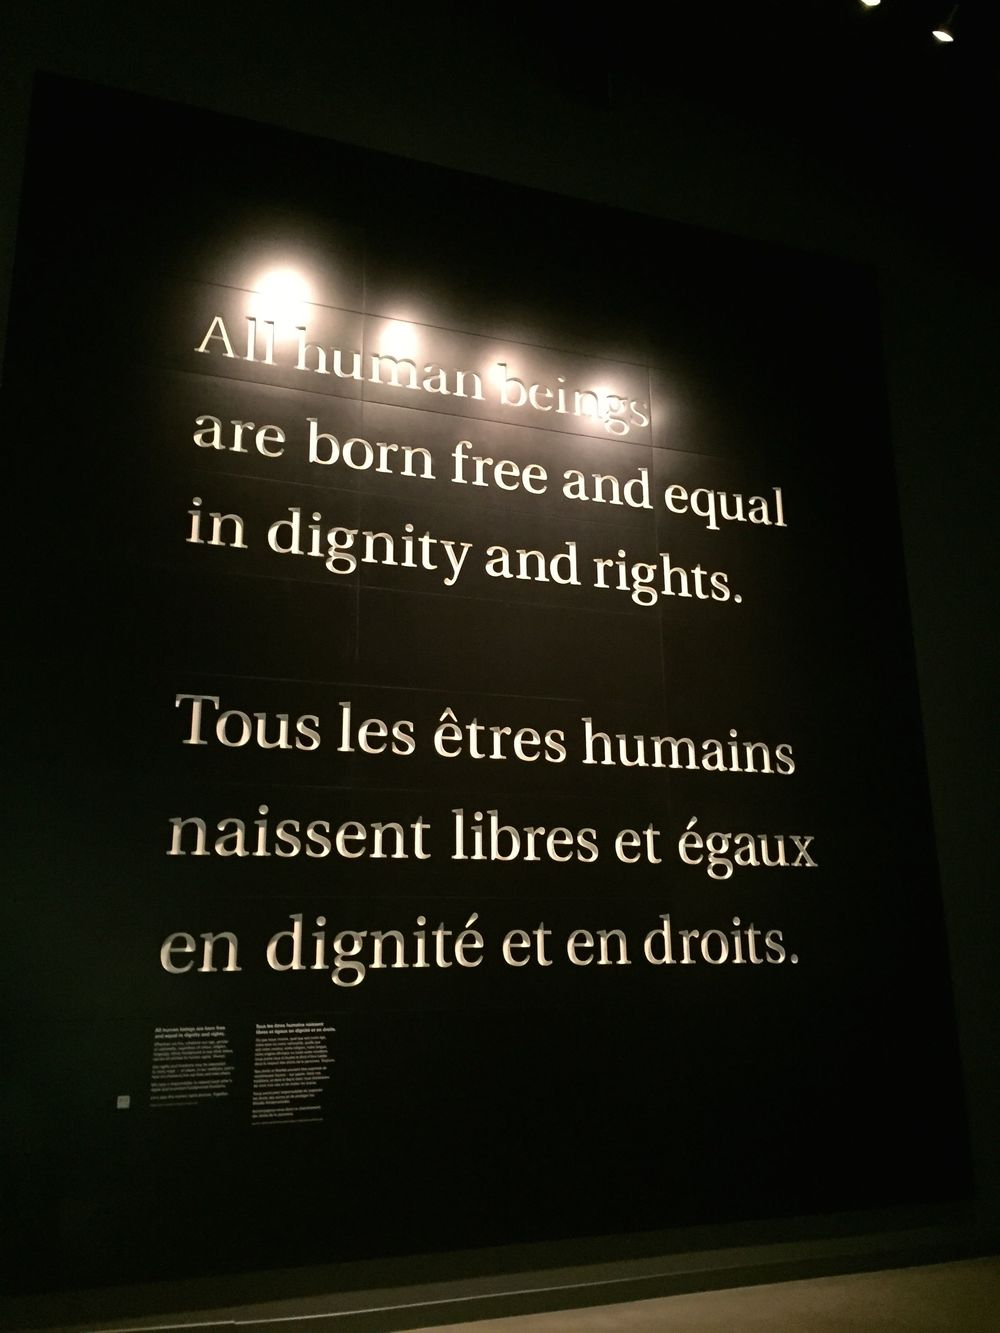 """All human beings are born free and equal in dignity and rights.""  Photo by Michelle Bredeson."